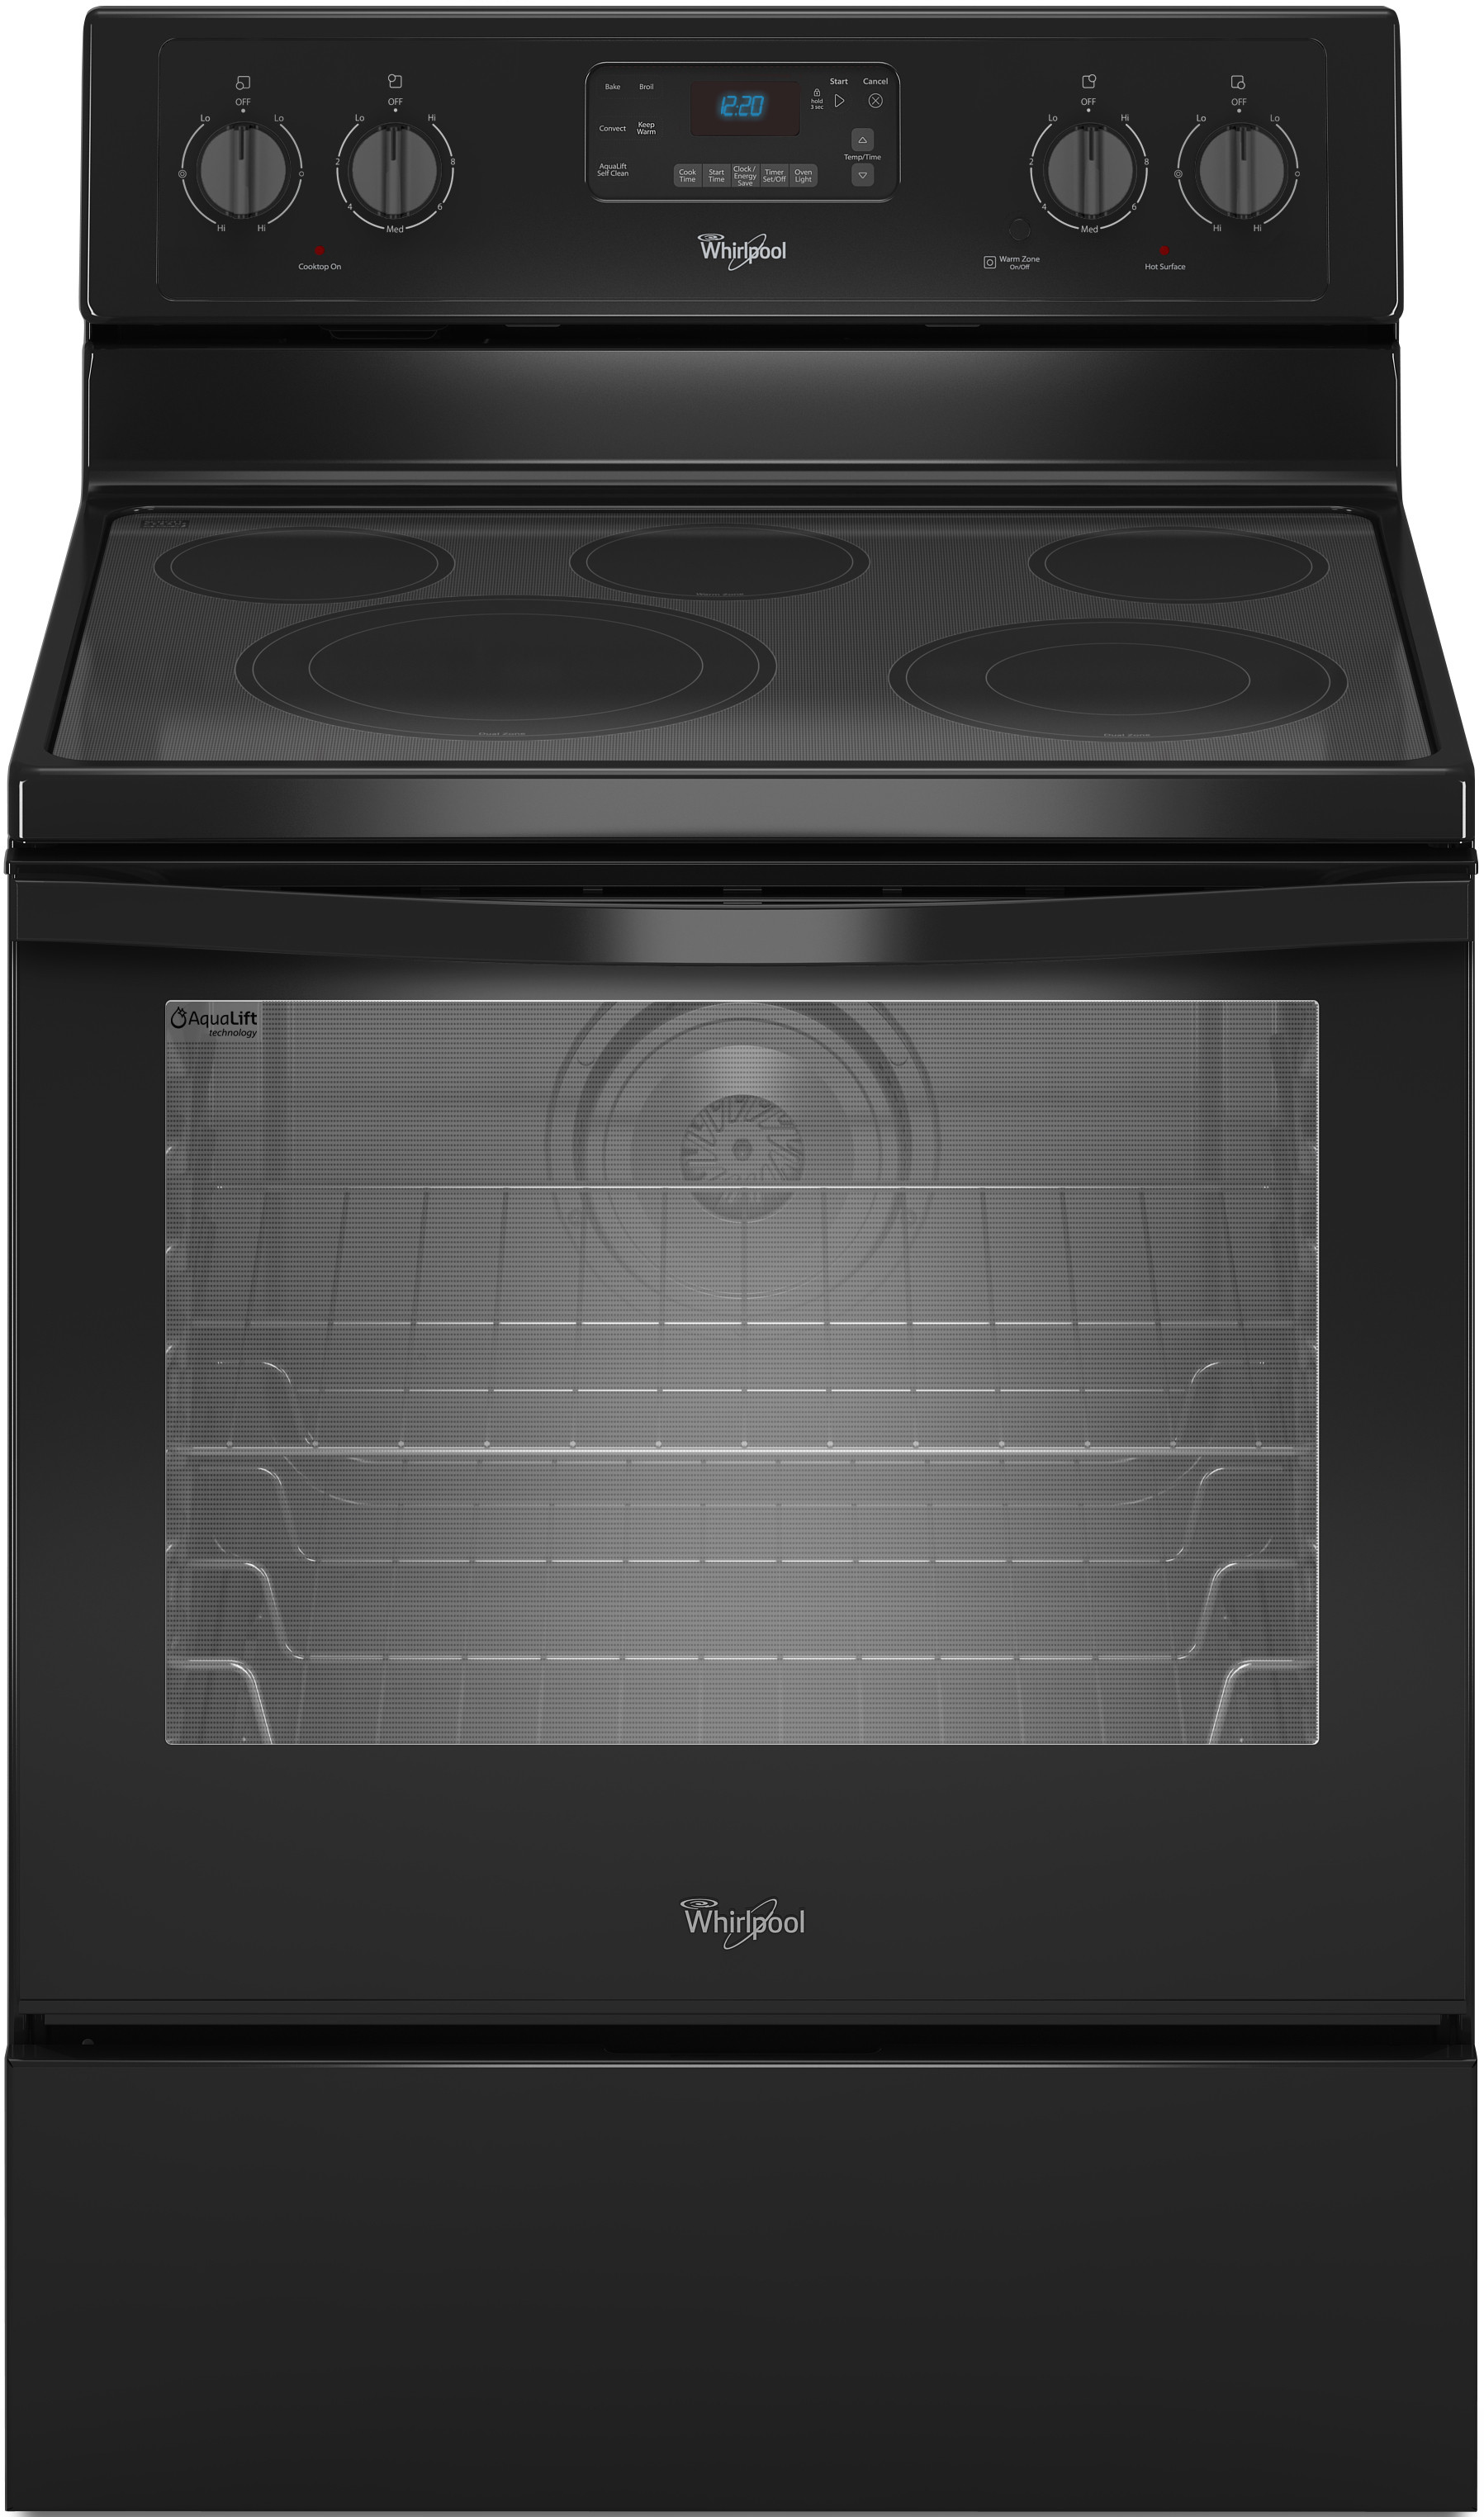 Whirlpool white ice electric range reviews - Whirlpool White Ice Electric Range Reviews 35